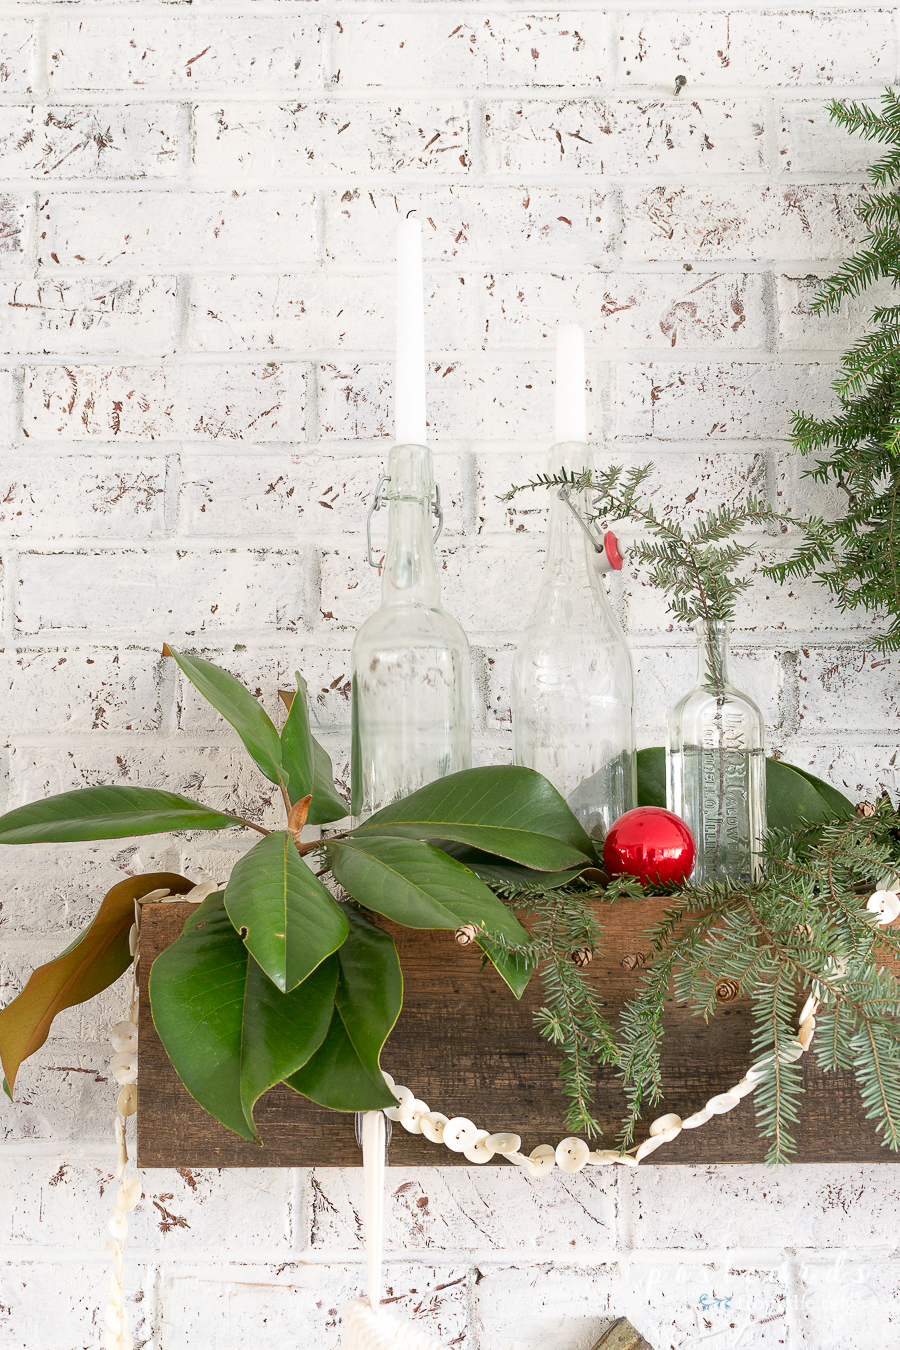 fireplace mantel shelf with magnolia branches and Christmas decor